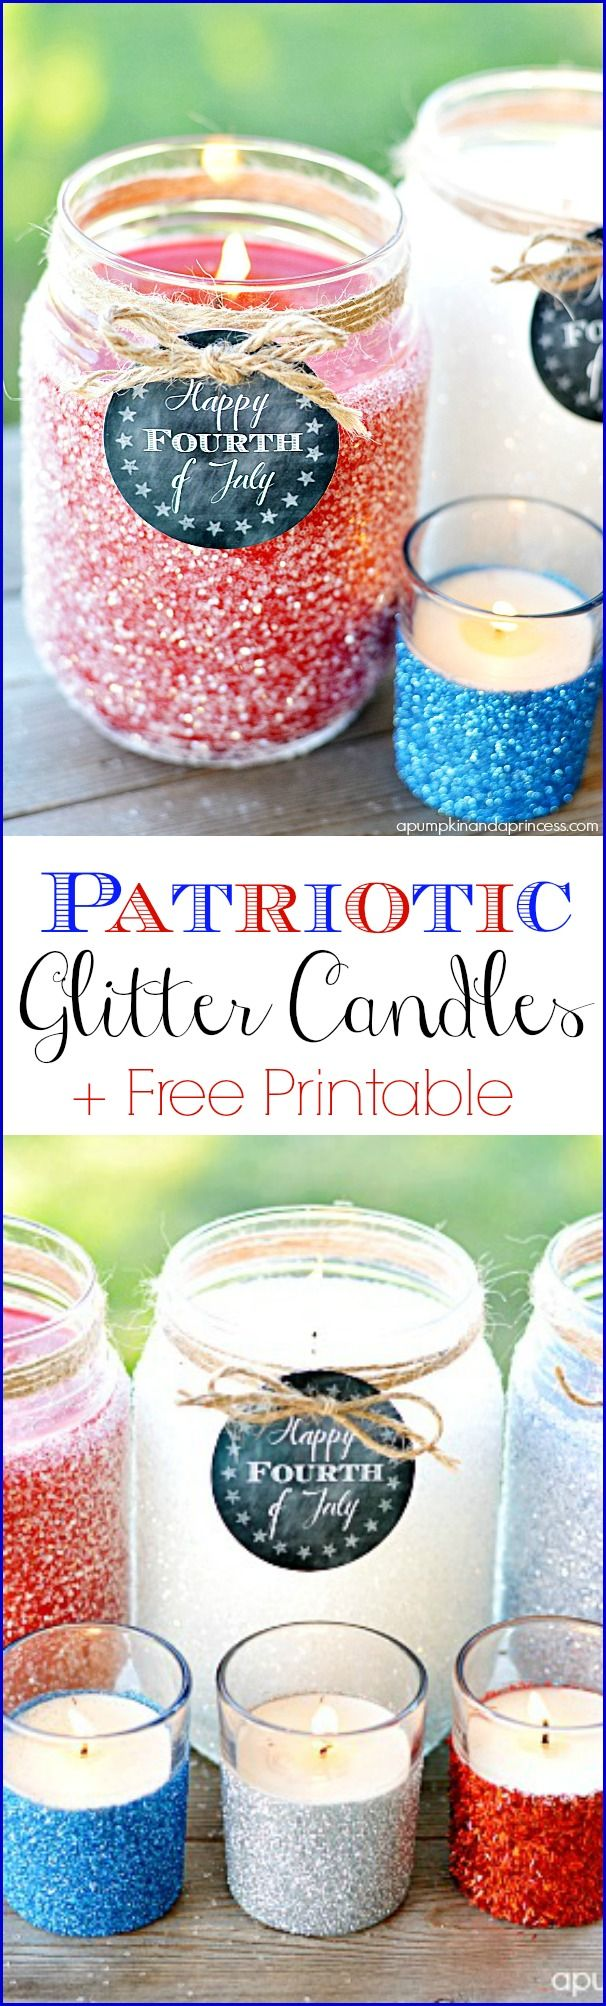 Patriotic Glitter Candles + Free Printable Tags